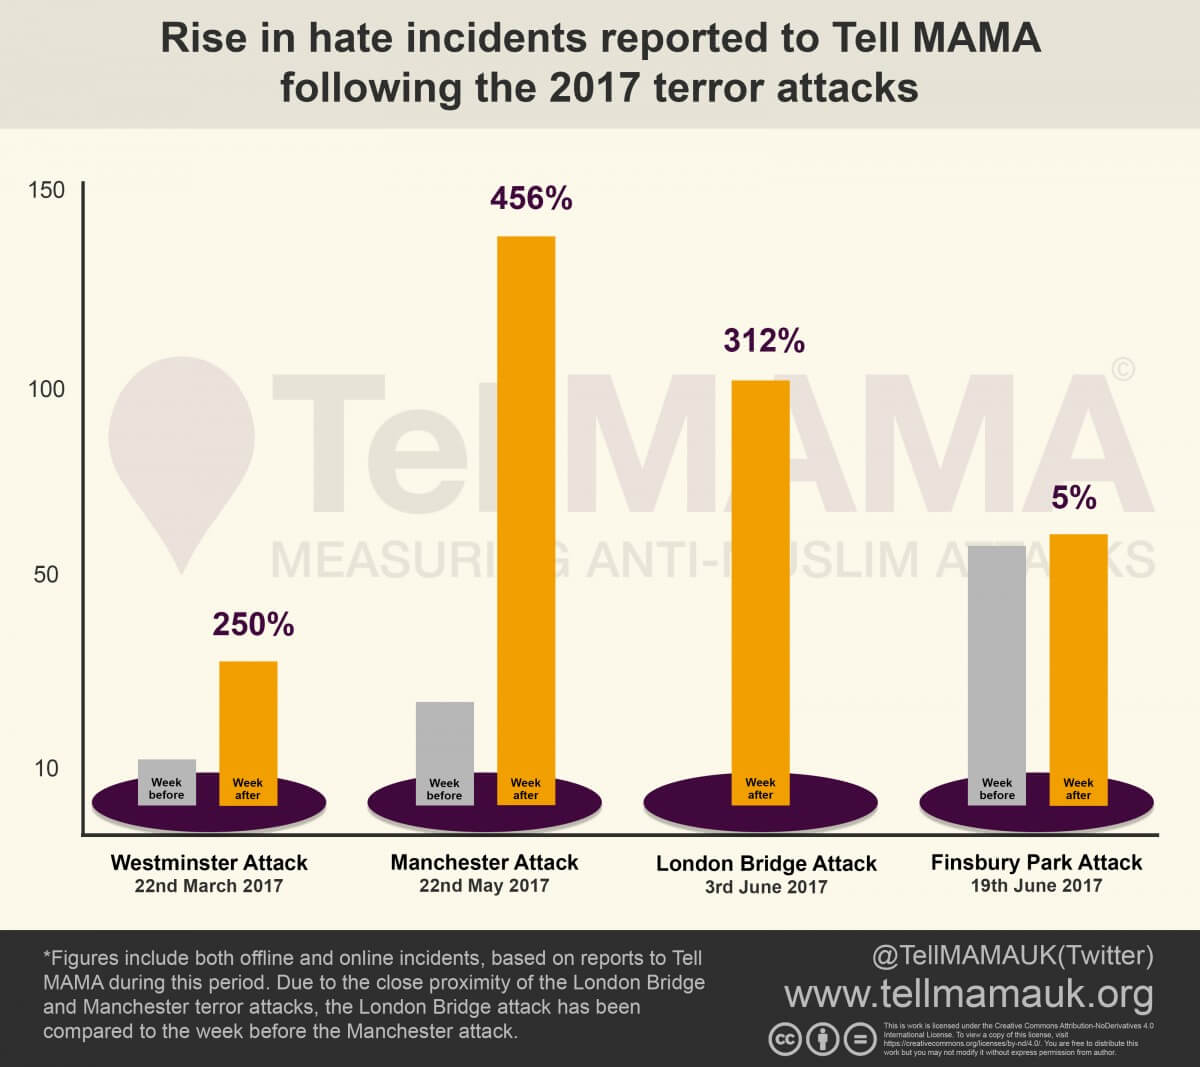 Anti-Muslim Hatred, Terrorism, Media Sources, Far Right Networks & Spike Points